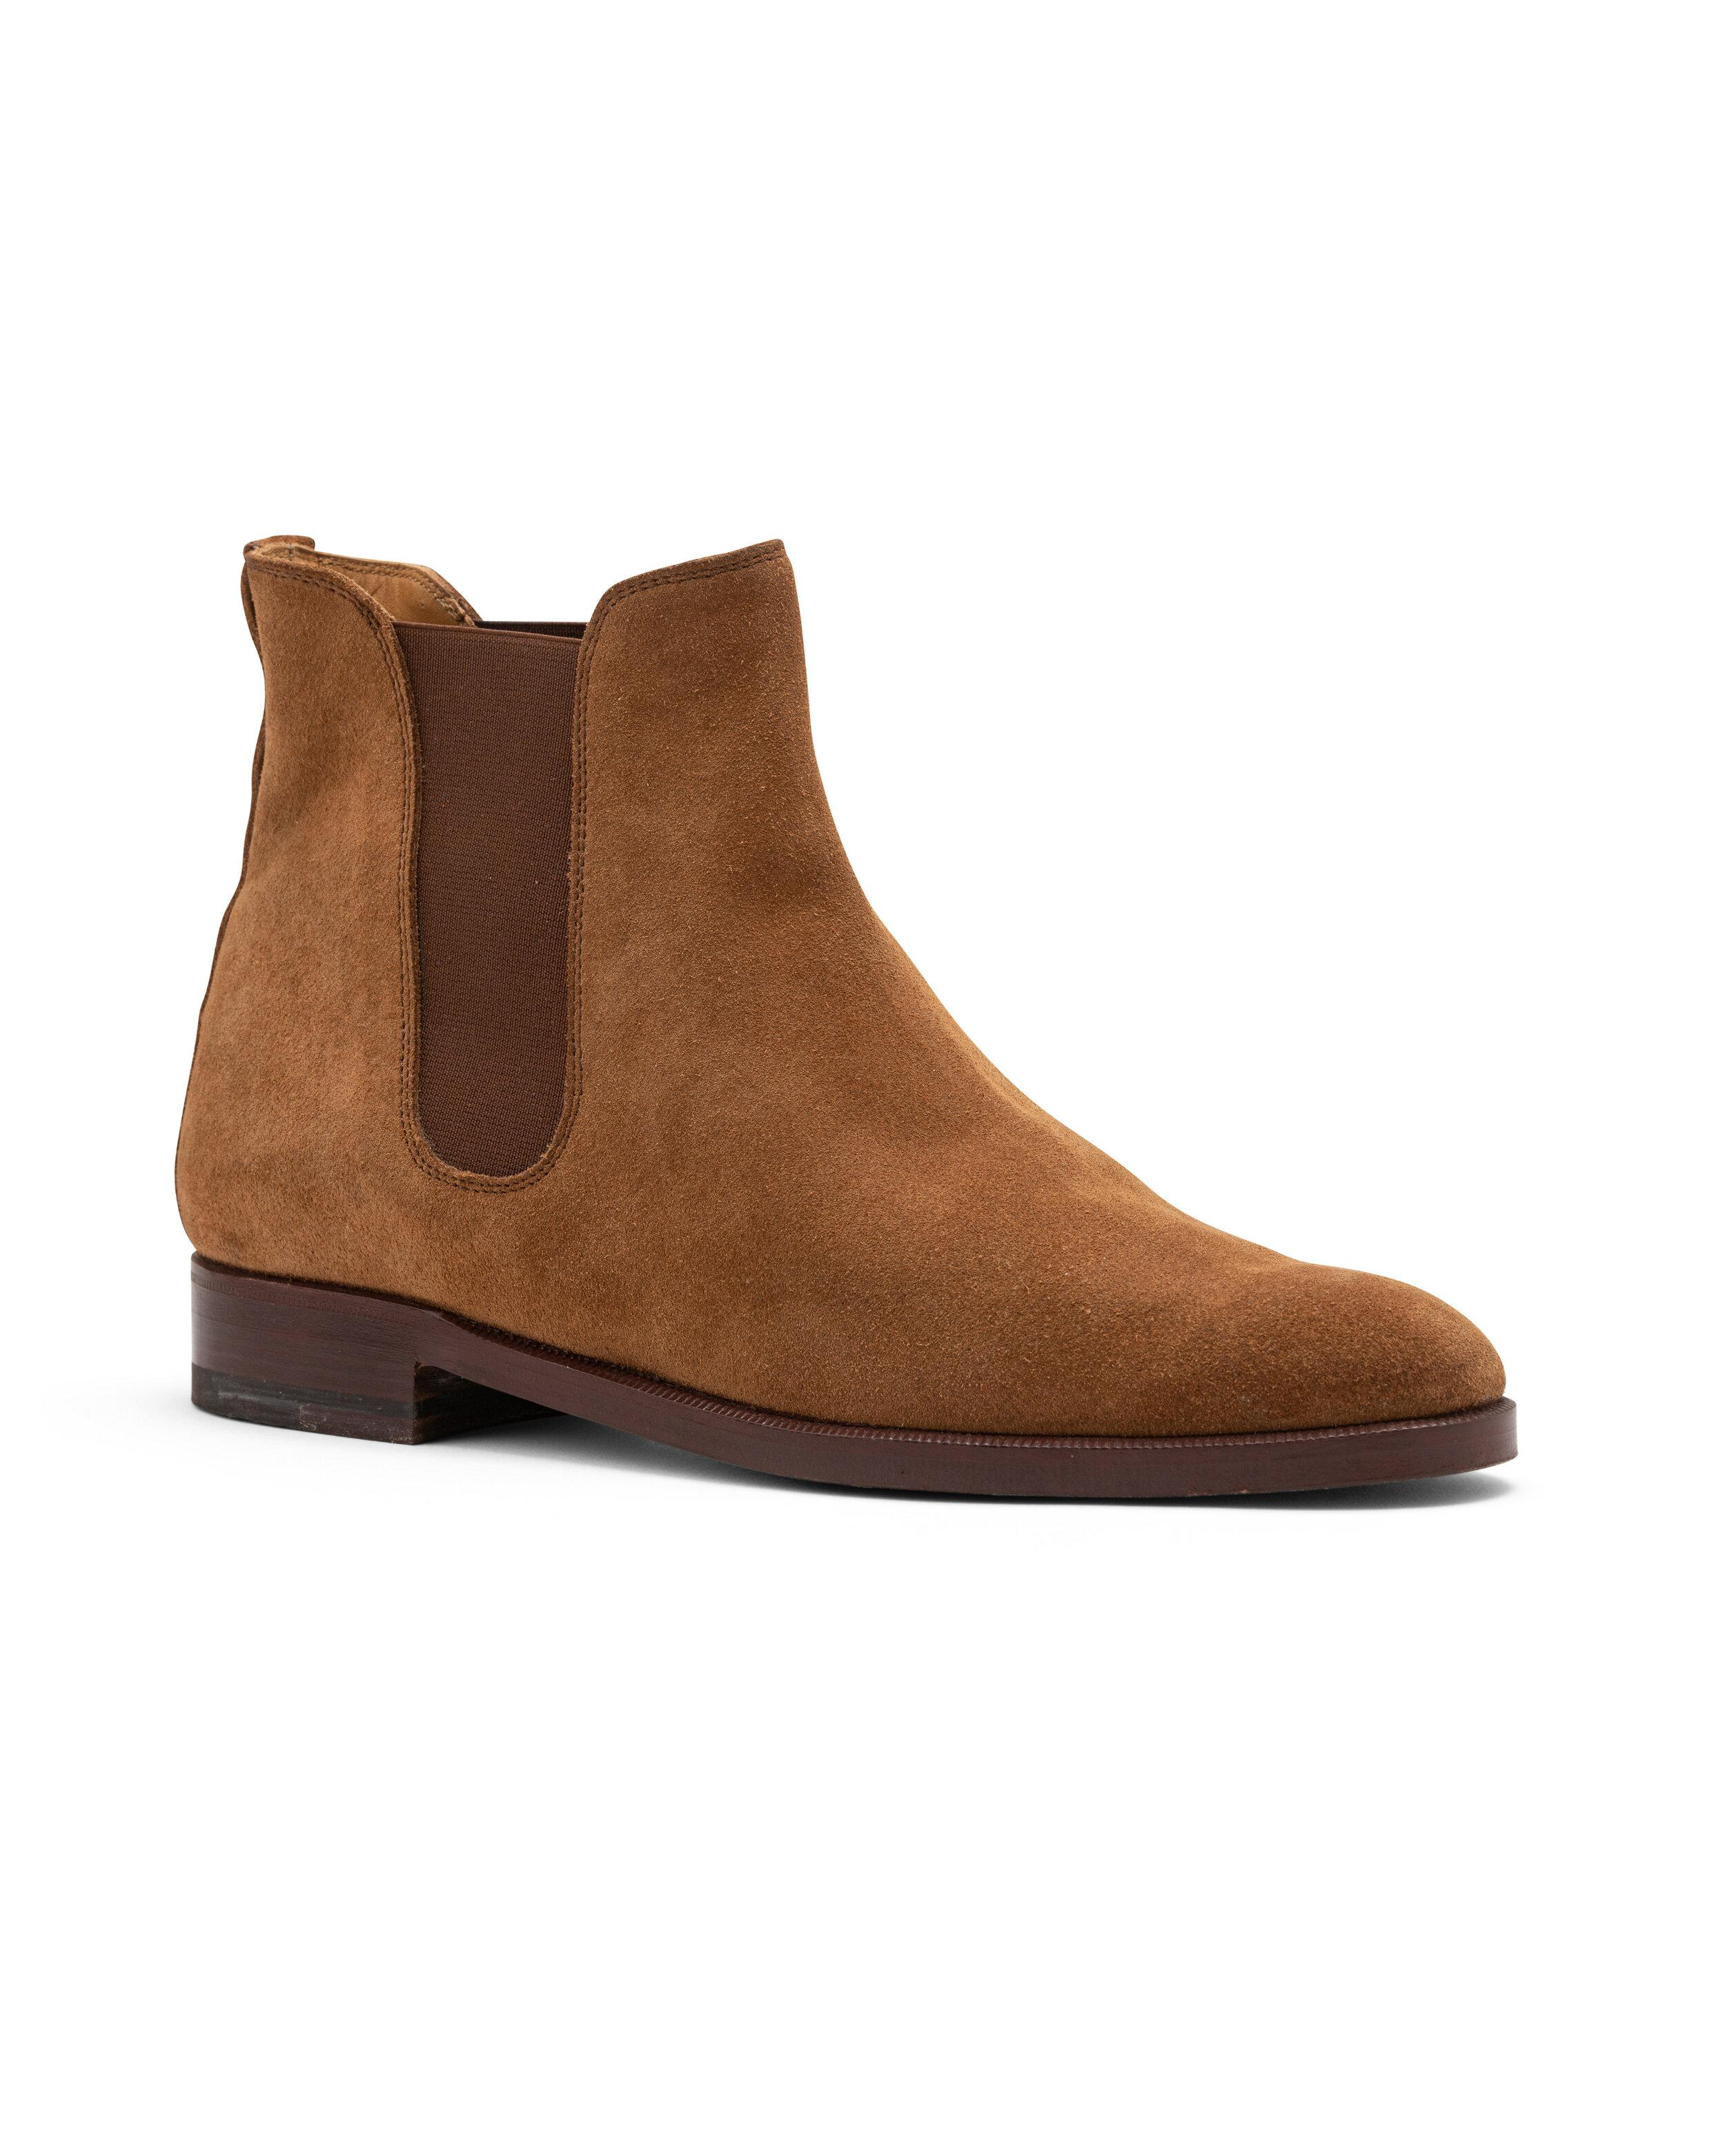 ODPEssentials Classic Chelsea Boot - Tan Suede